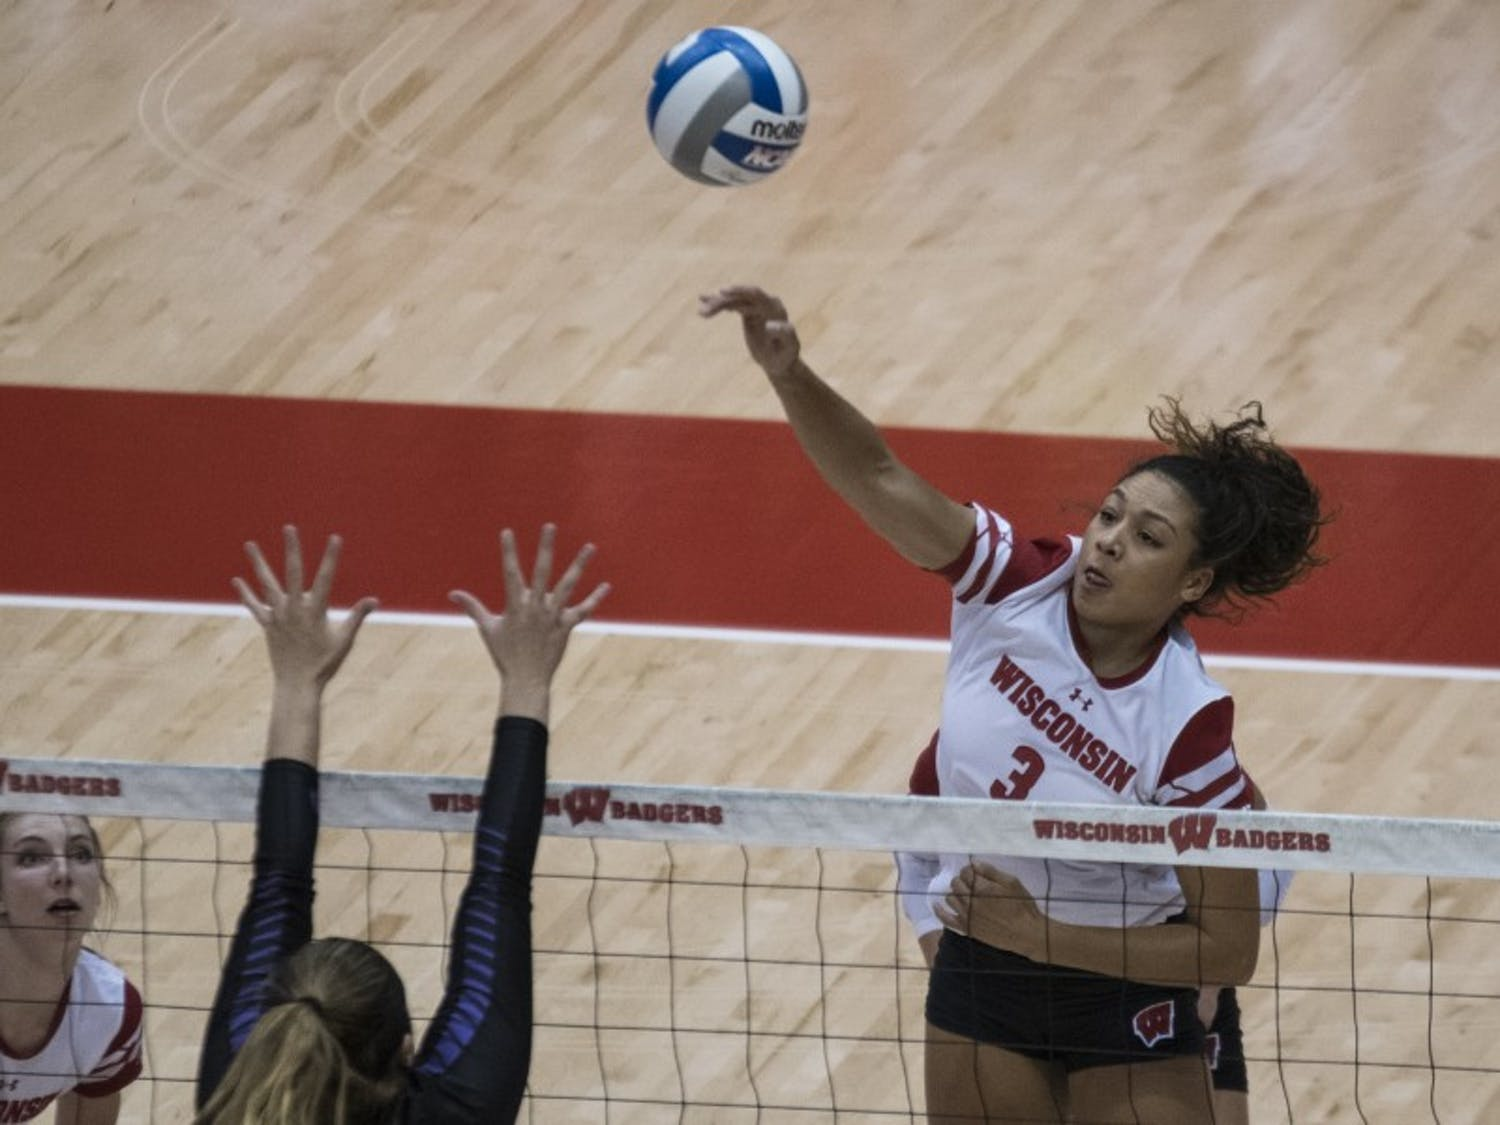 Despite recent woes, Lauryn Gillis still feels confident that Wisconsin can close out the season on a strong note and make a run at the NCAA title.